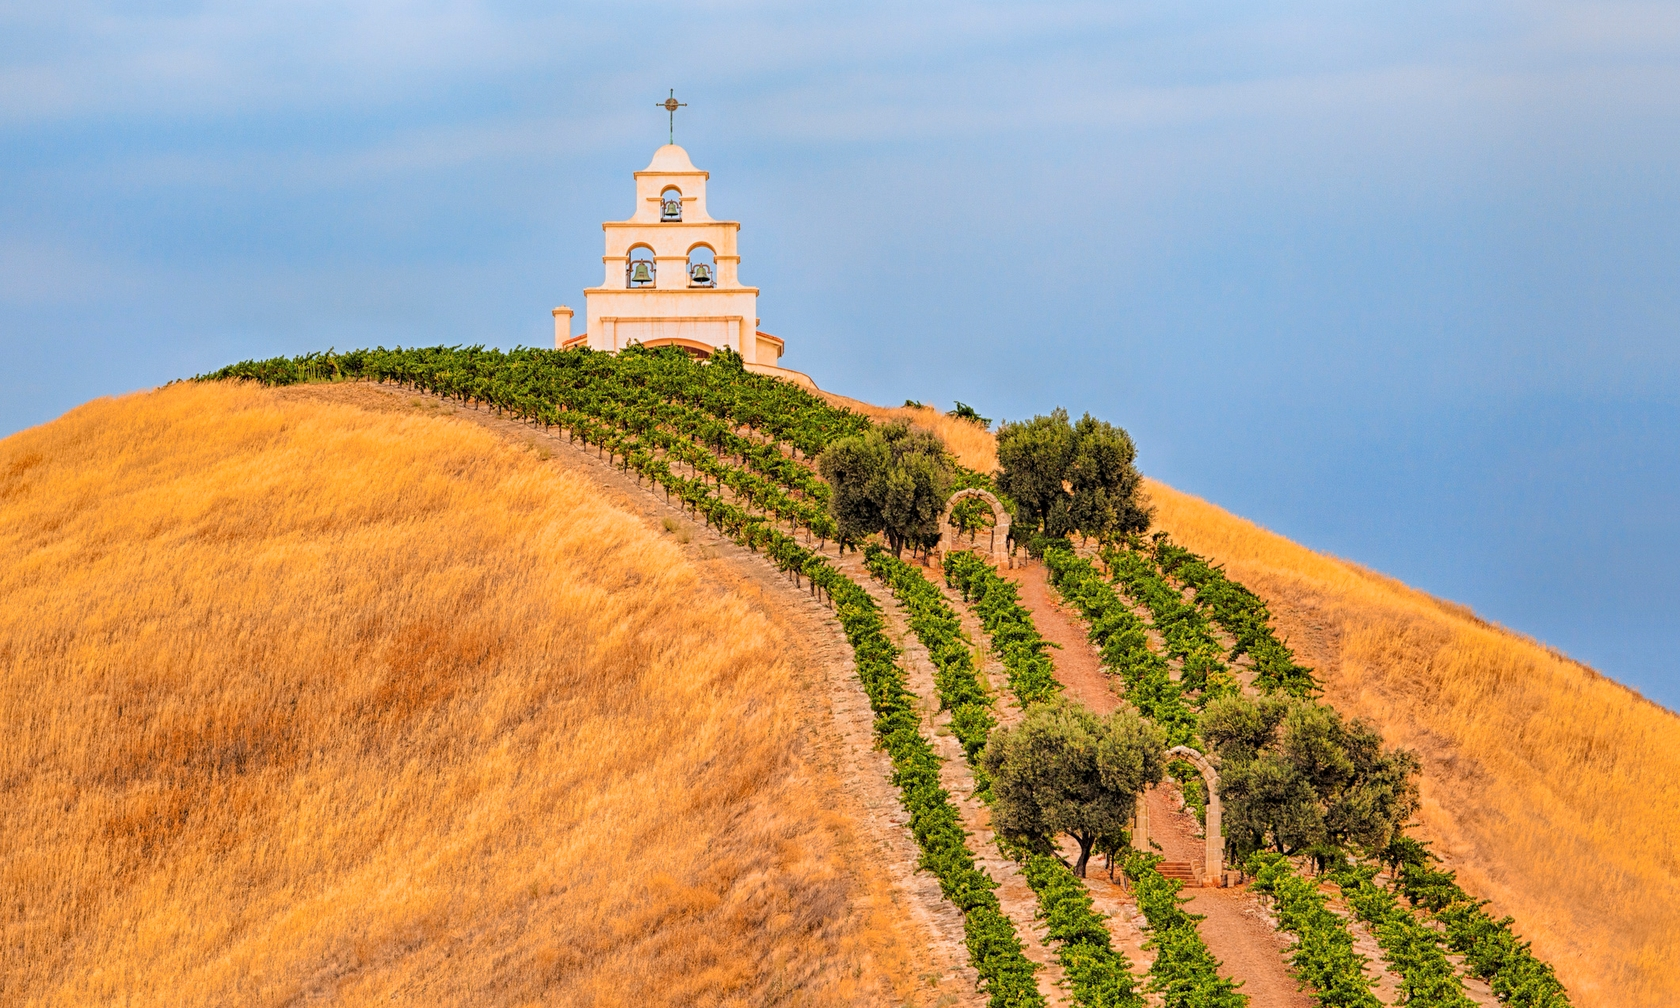 Vacation rentals in Paso Robles